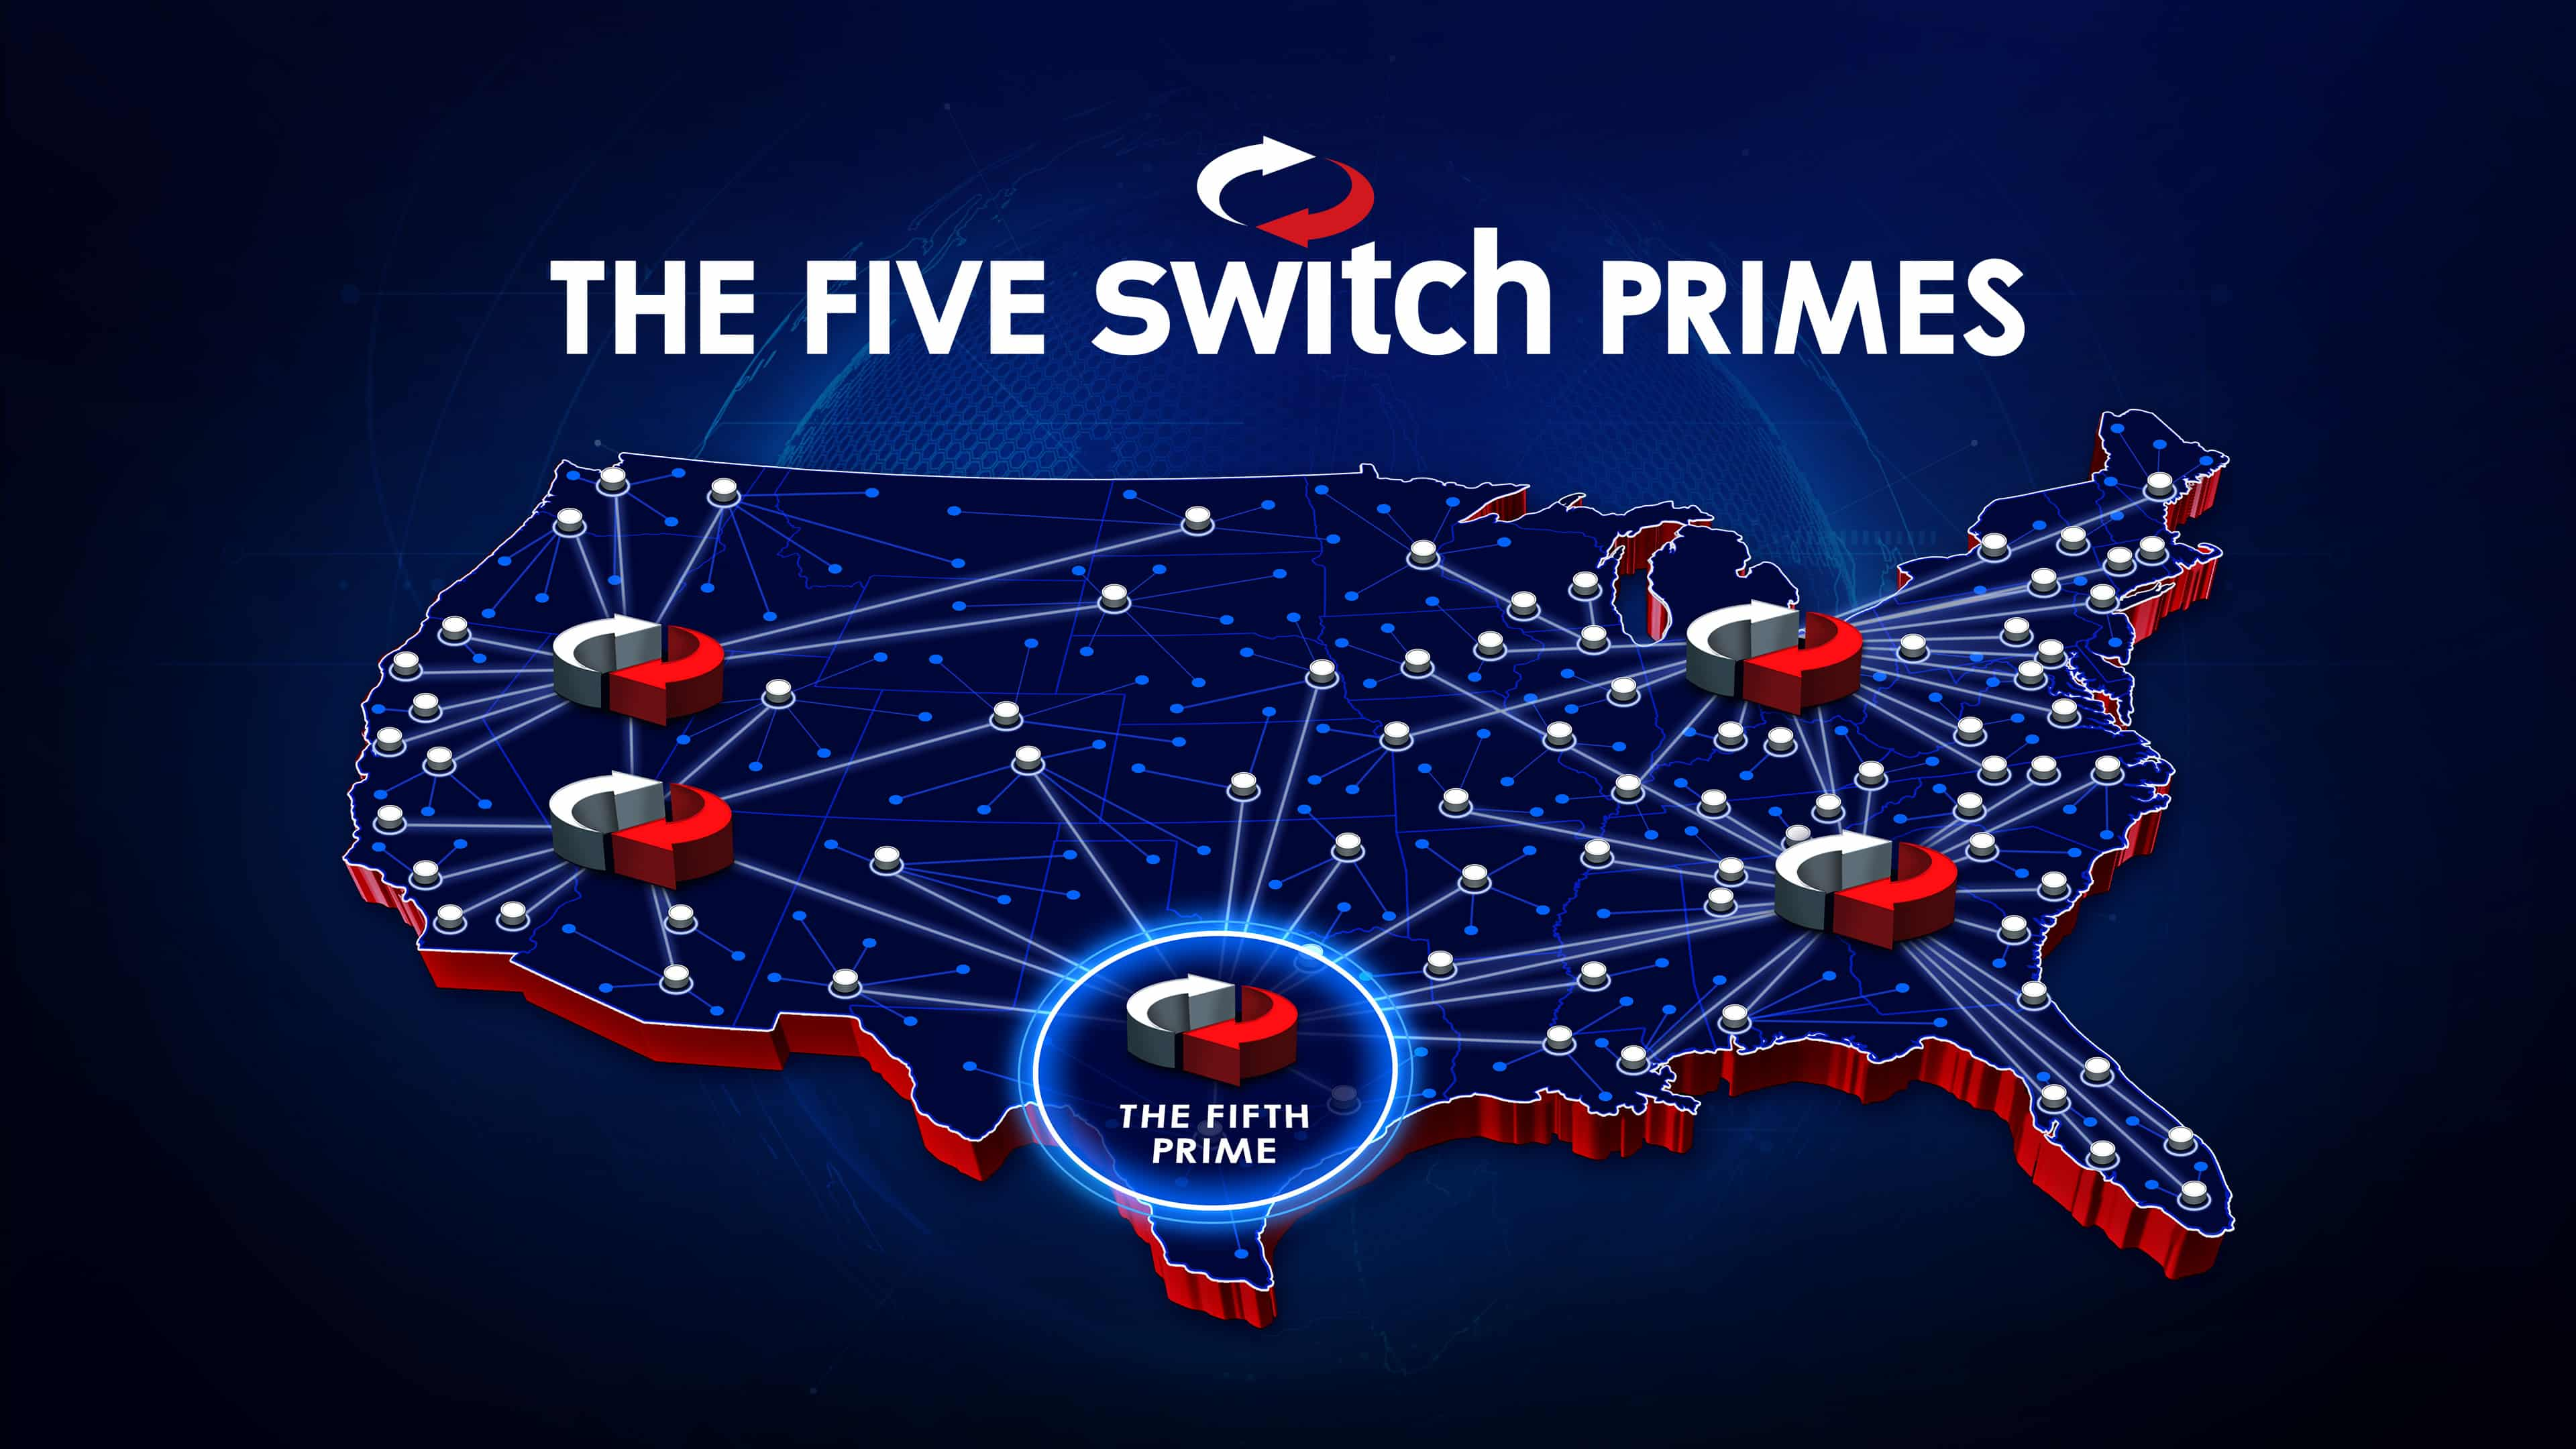 Switch Launches Fifth Prime Campus in Texas; Agrees to Acquire Data Foundry